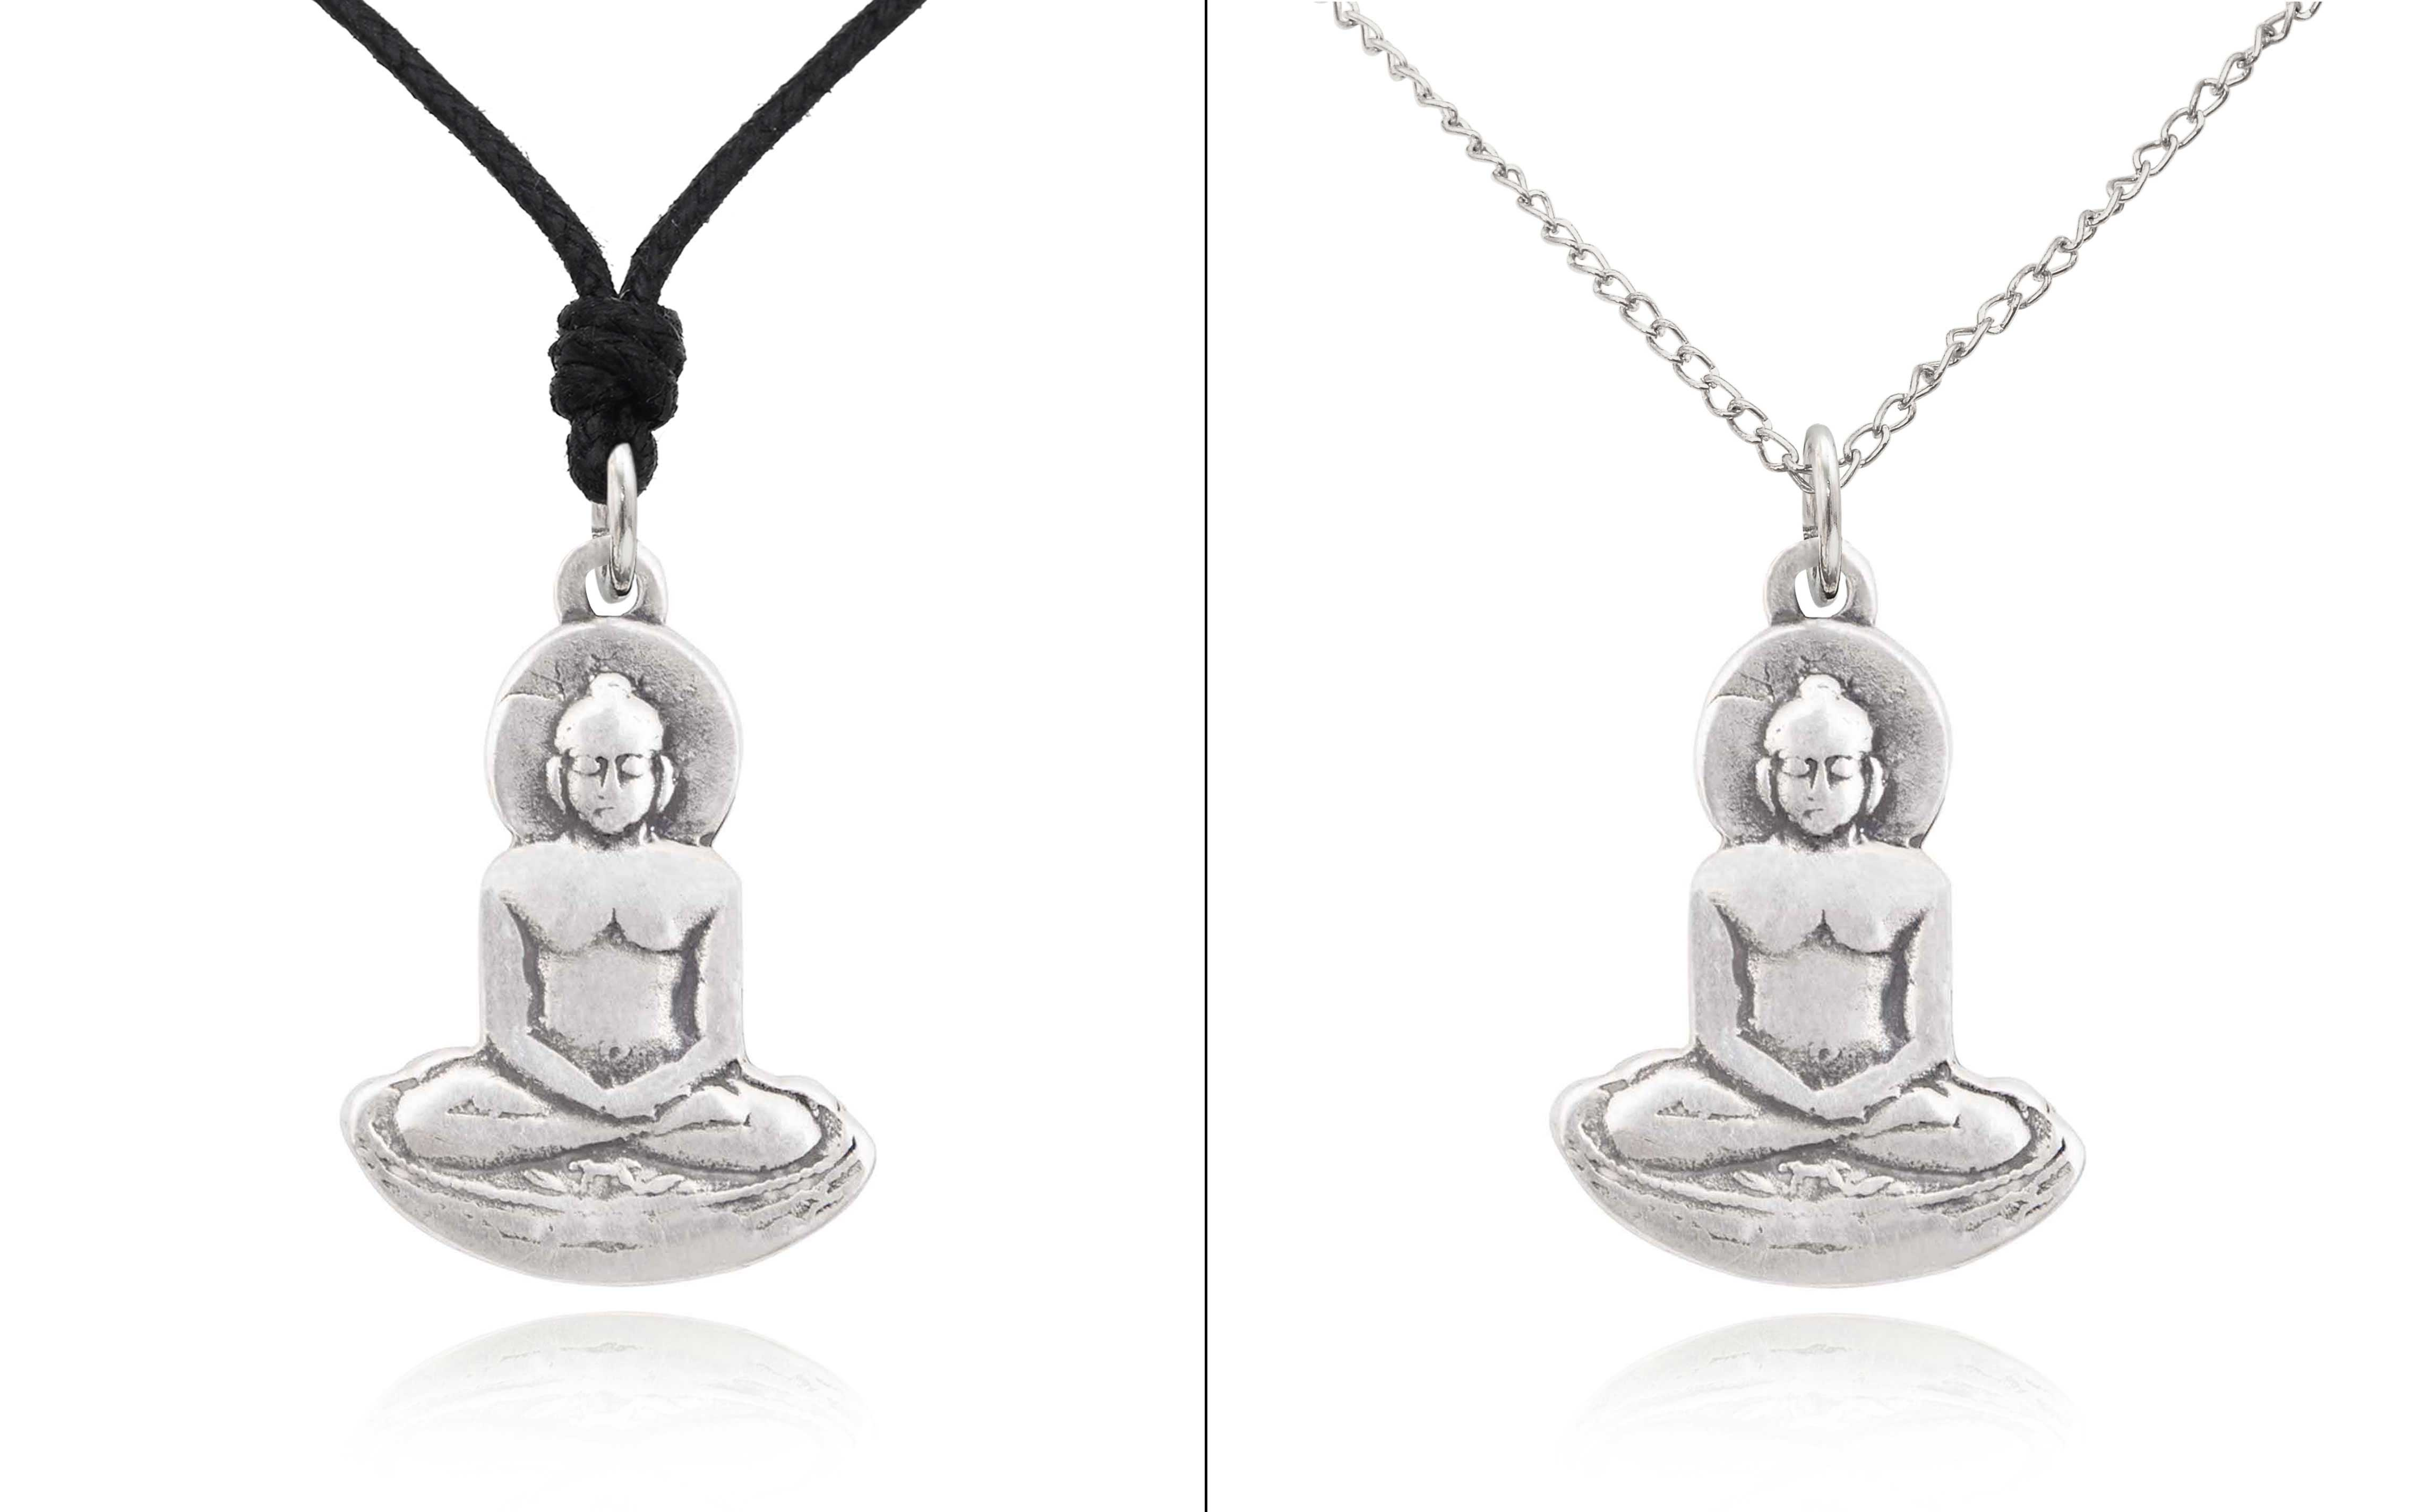 New buddha yoga sterling silver pewter brass charm necklace pendant image is loading new buddha yoga sterling silver pewter brass charm aloadofball Image collections